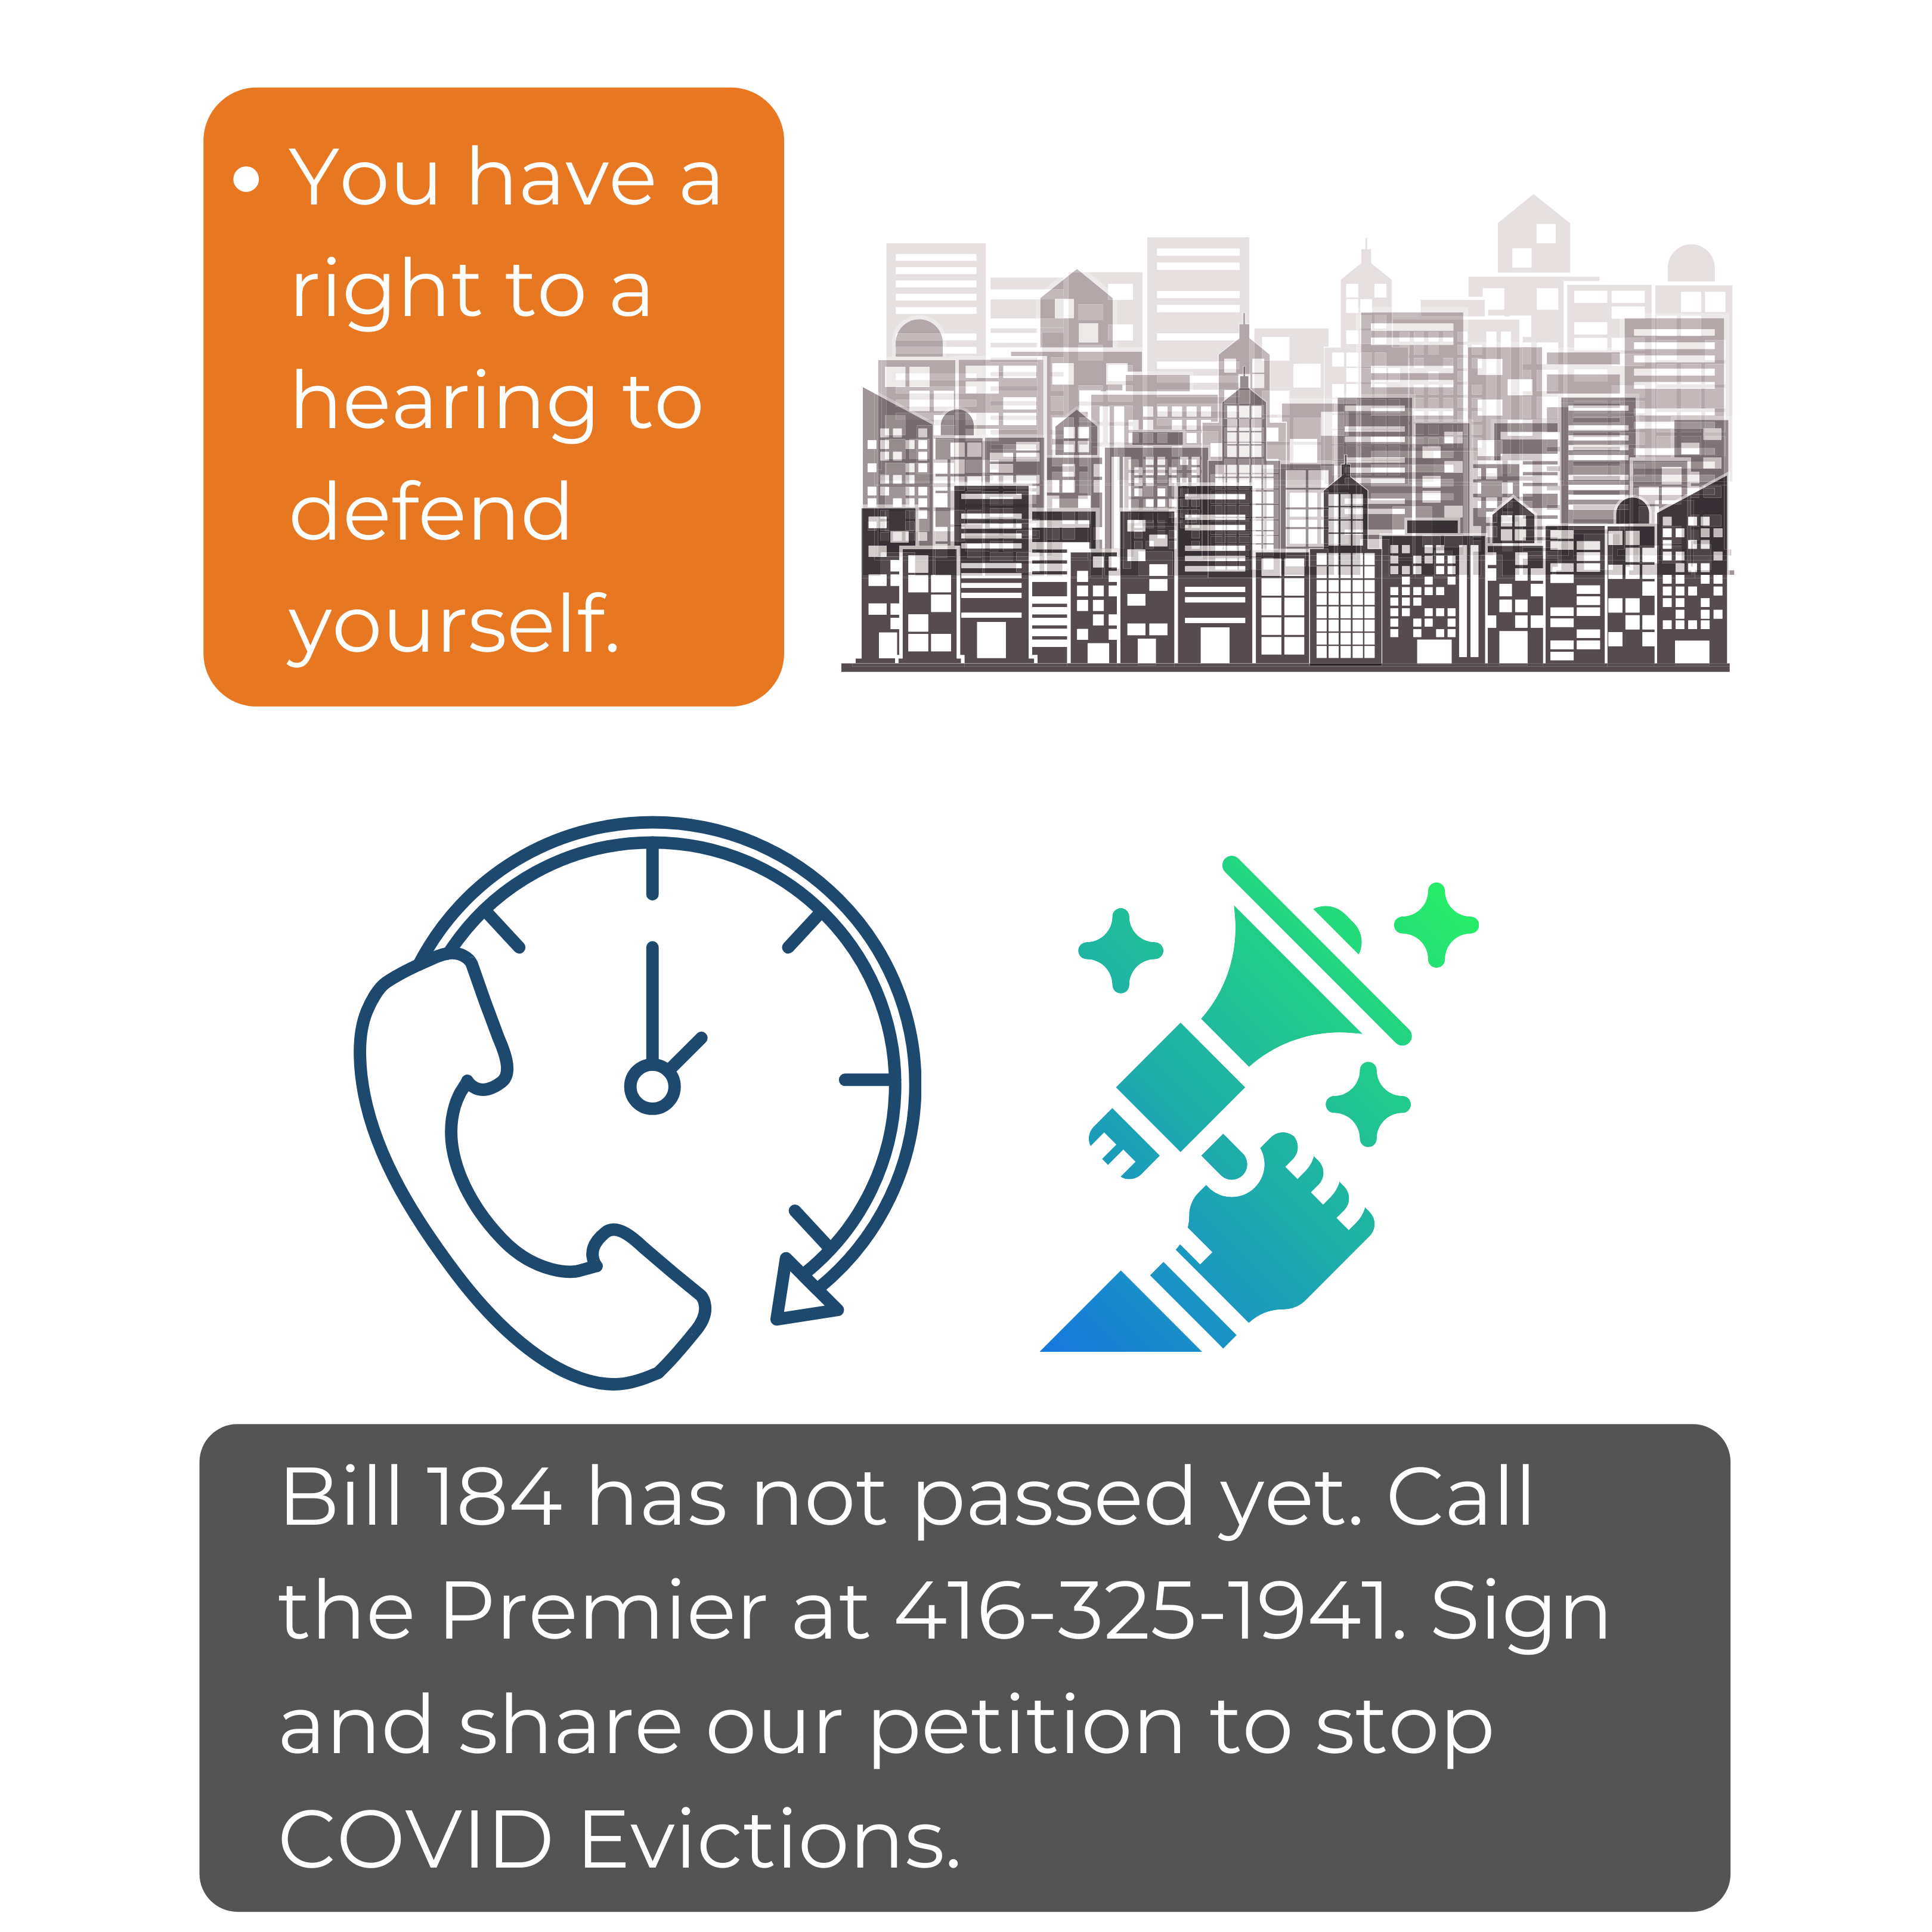 You have a right to a hearing to defend yourself. Bill 184 has not passed yet. Call the Premier at 416-325-1941. Sign and share our petition to stop COVID Evictions.